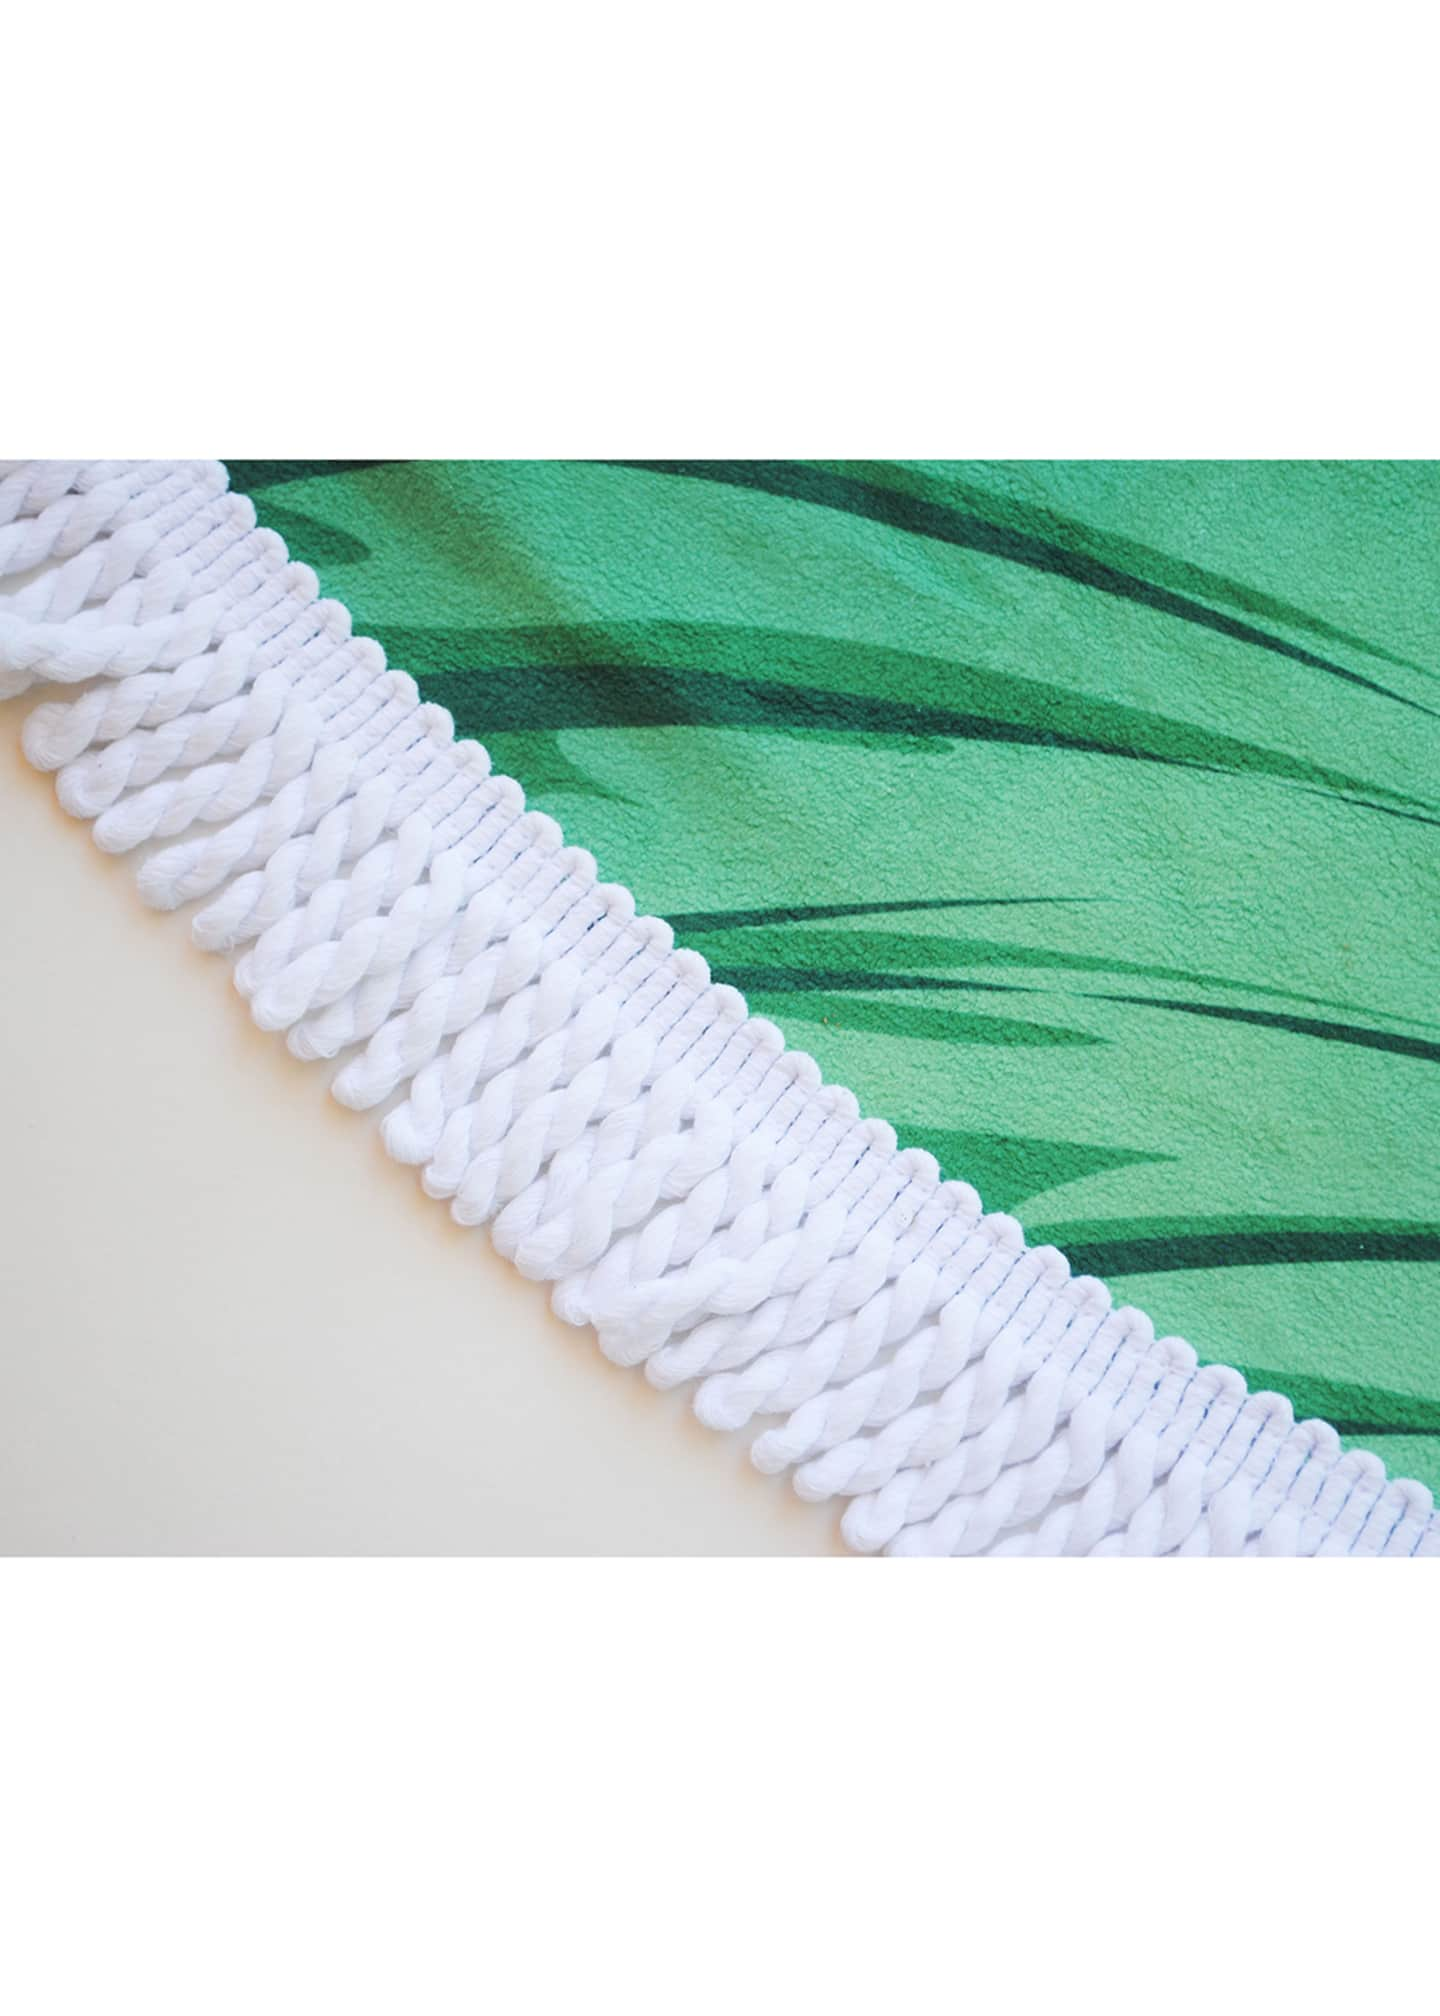 Image 2 of 2: Banana Leaf Round Beach Towel